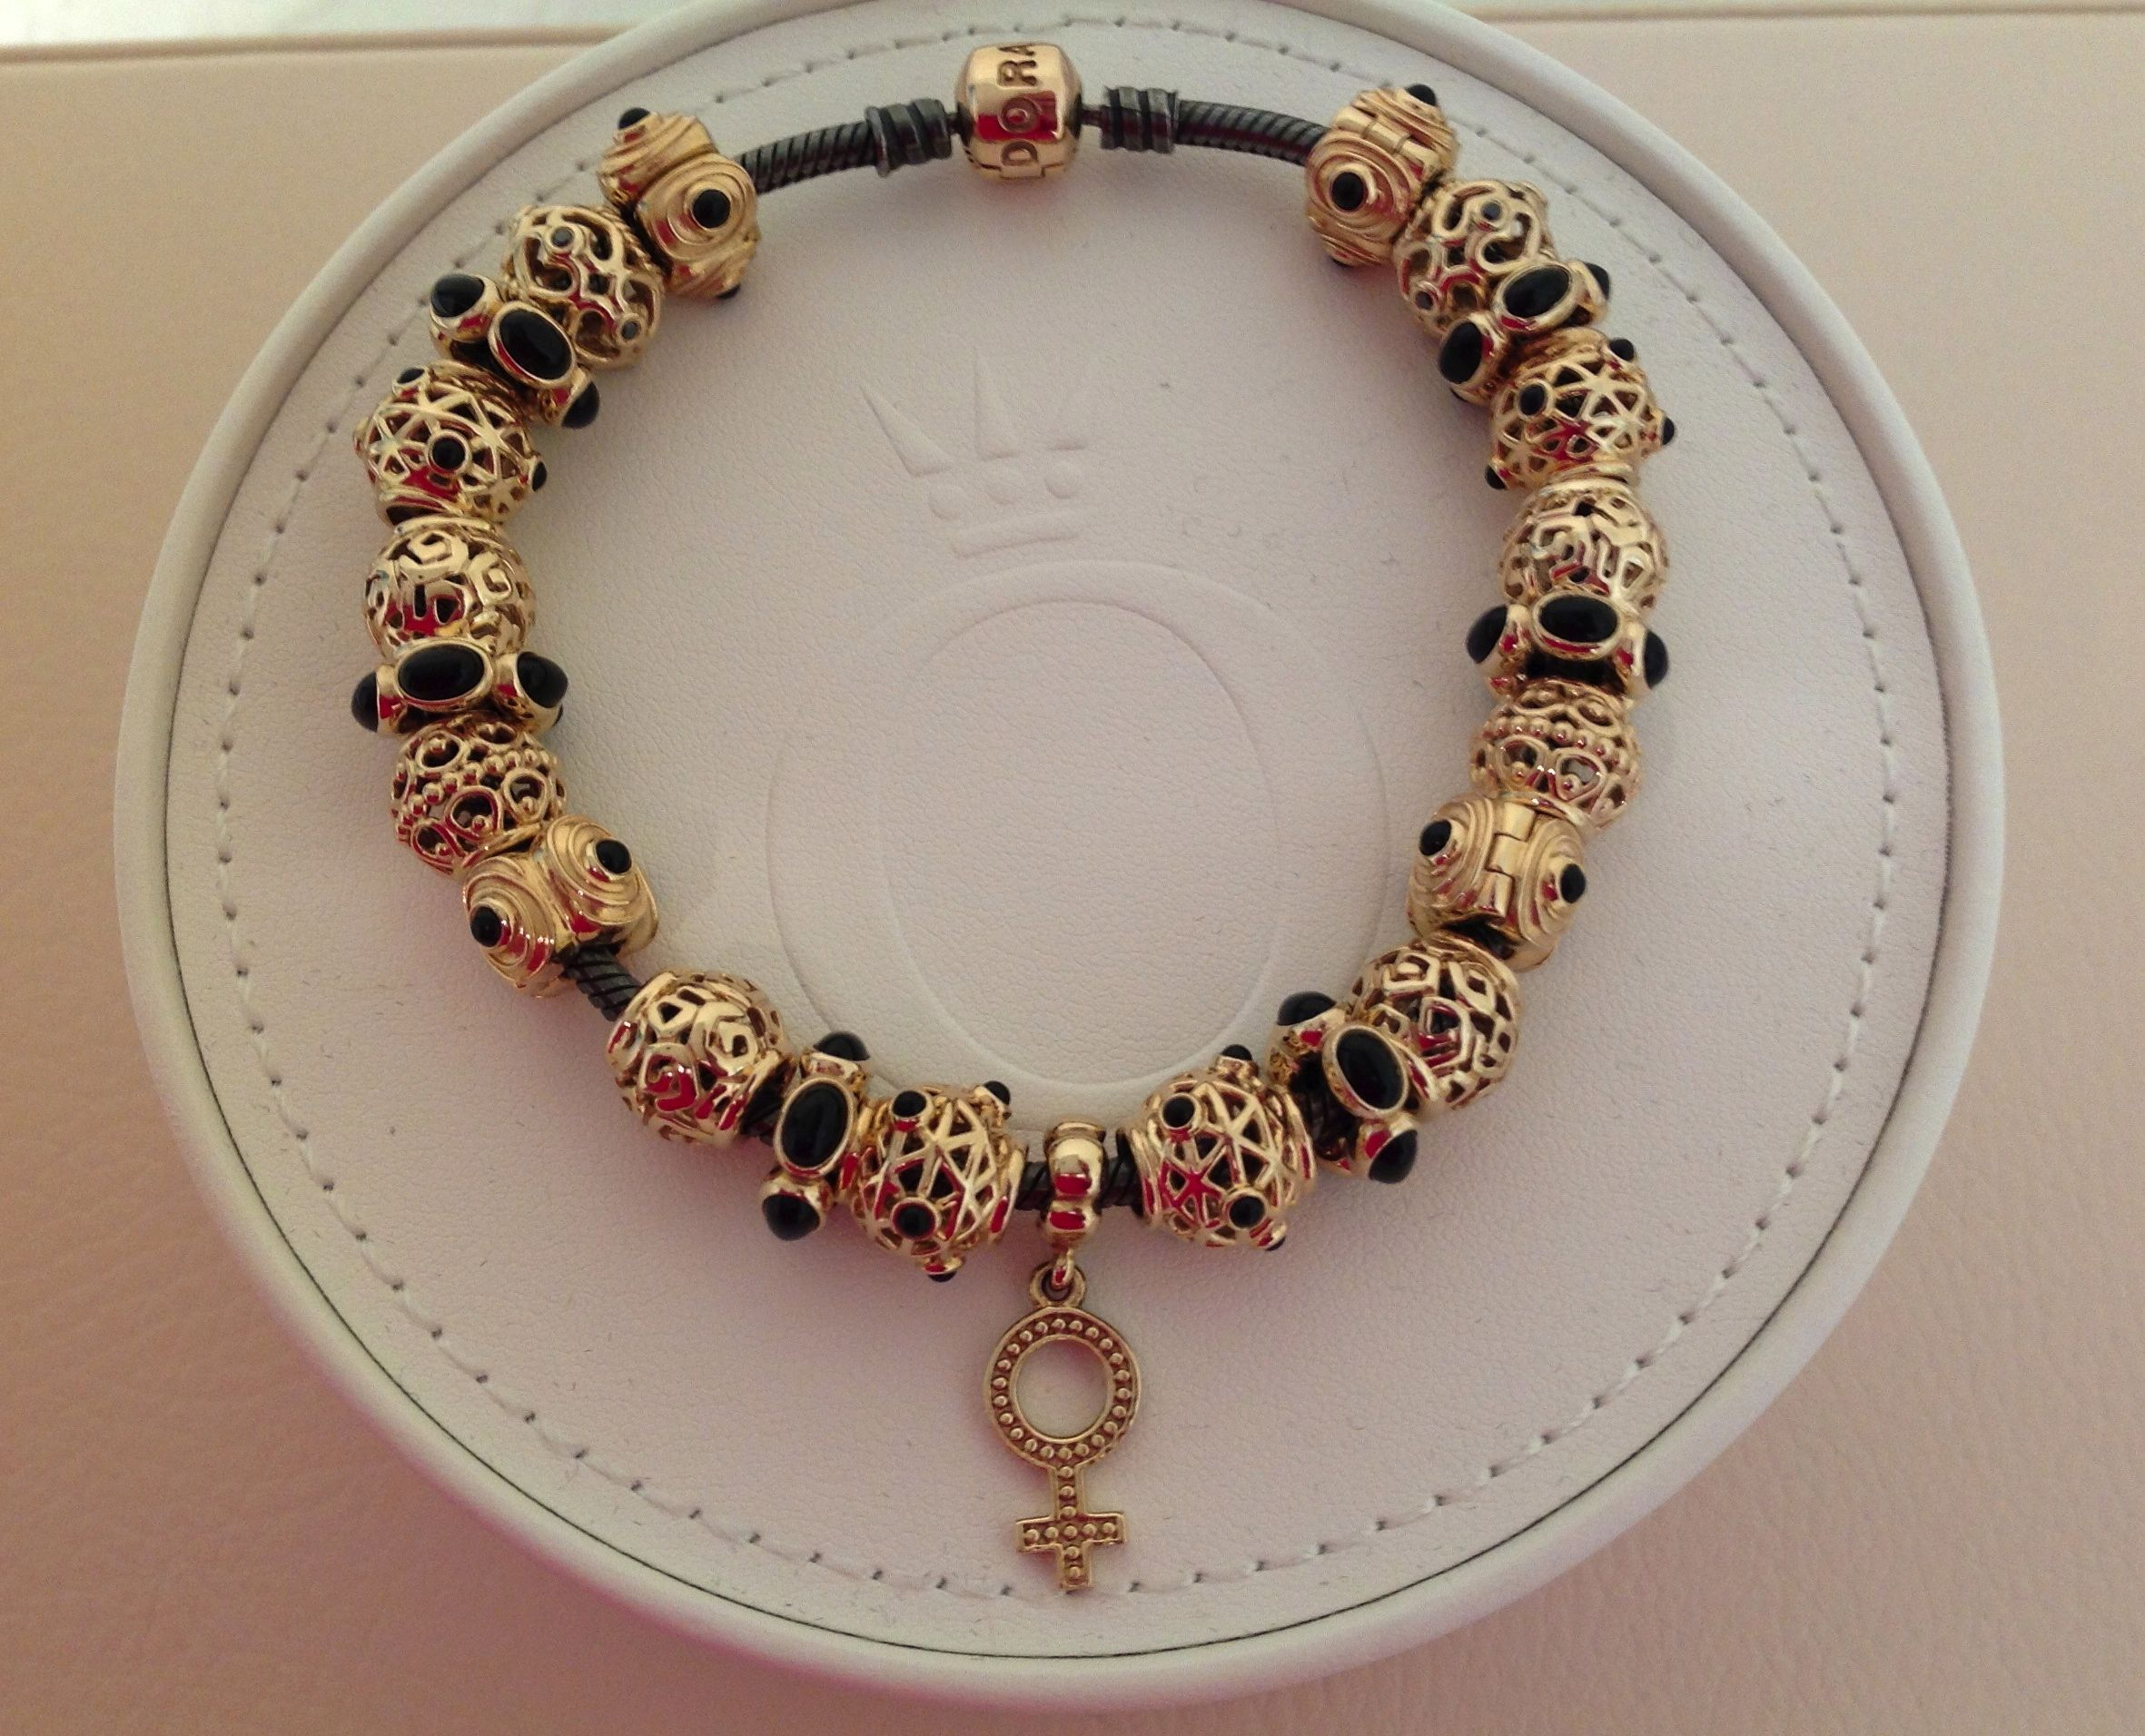 Pandora Gold And Black Onyx Bracelet Love The Contrast Of The Black And